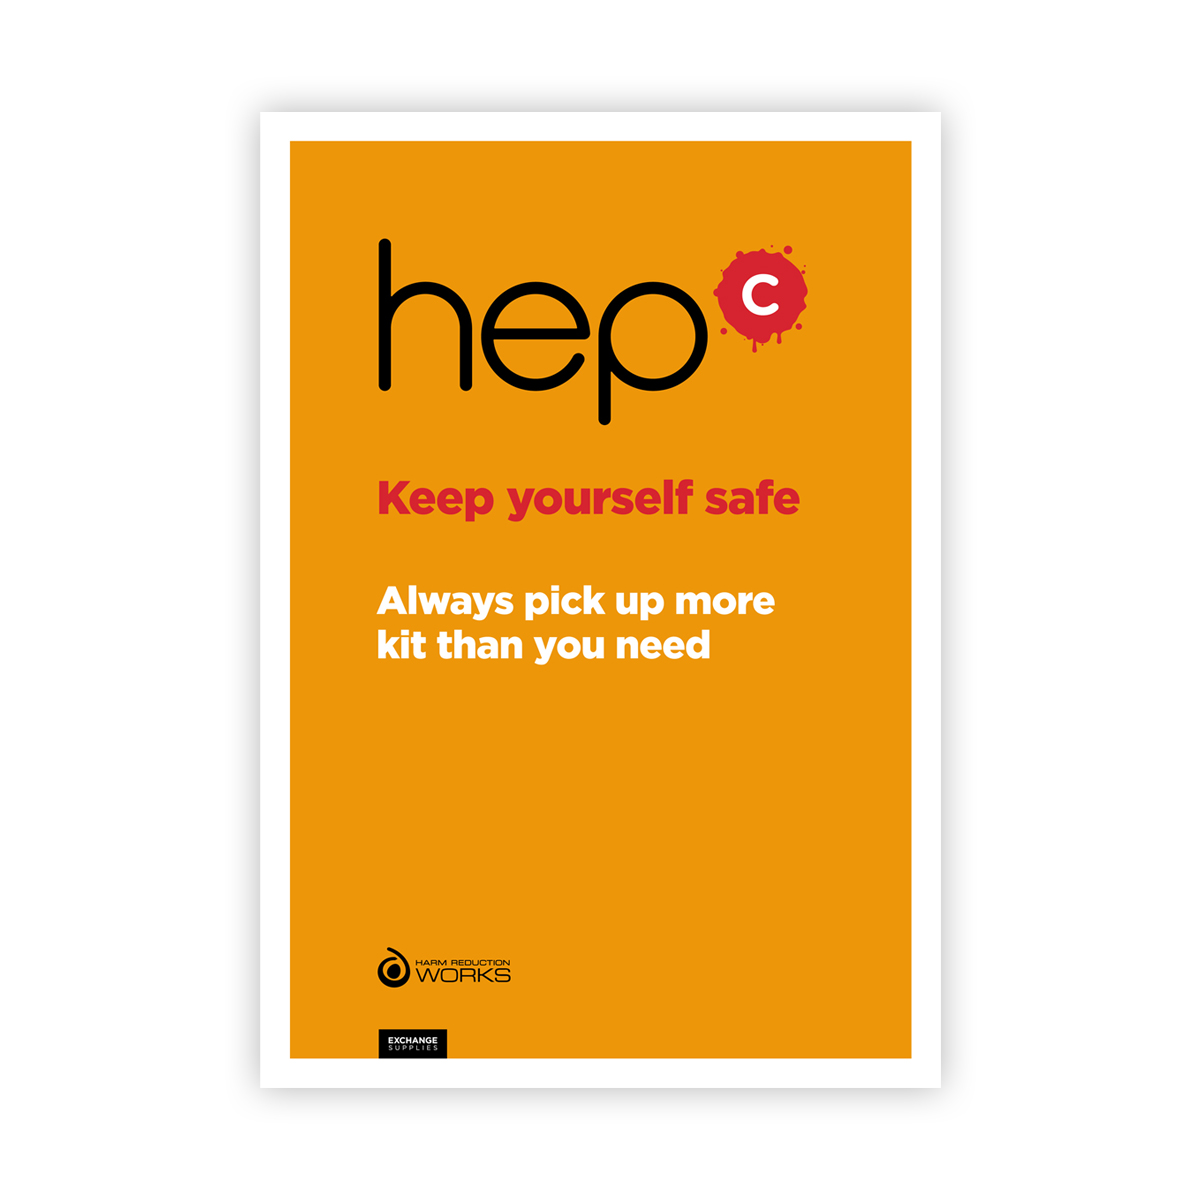 Keep yourself safe: pick up more than you need